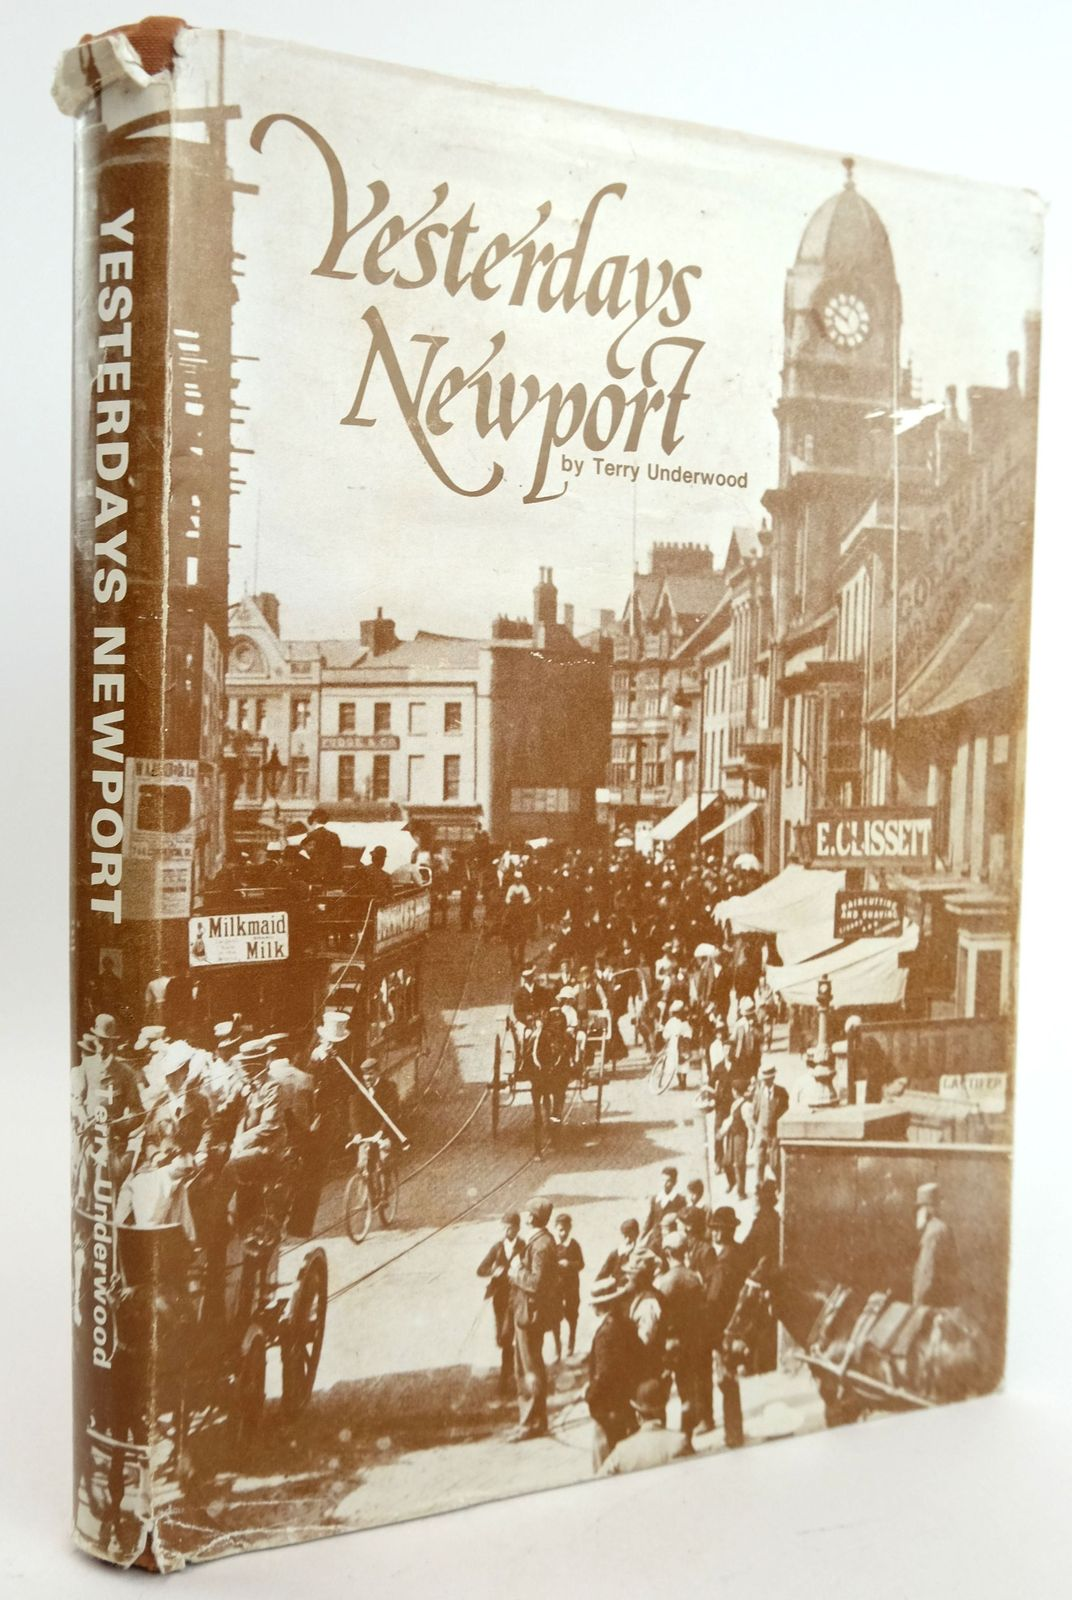 Photo of YESTERDAYS NEWPORT written by Underwood, Terry published by Terry Underwood (STOCK CODE: 1819423)  for sale by Stella & Rose's Books